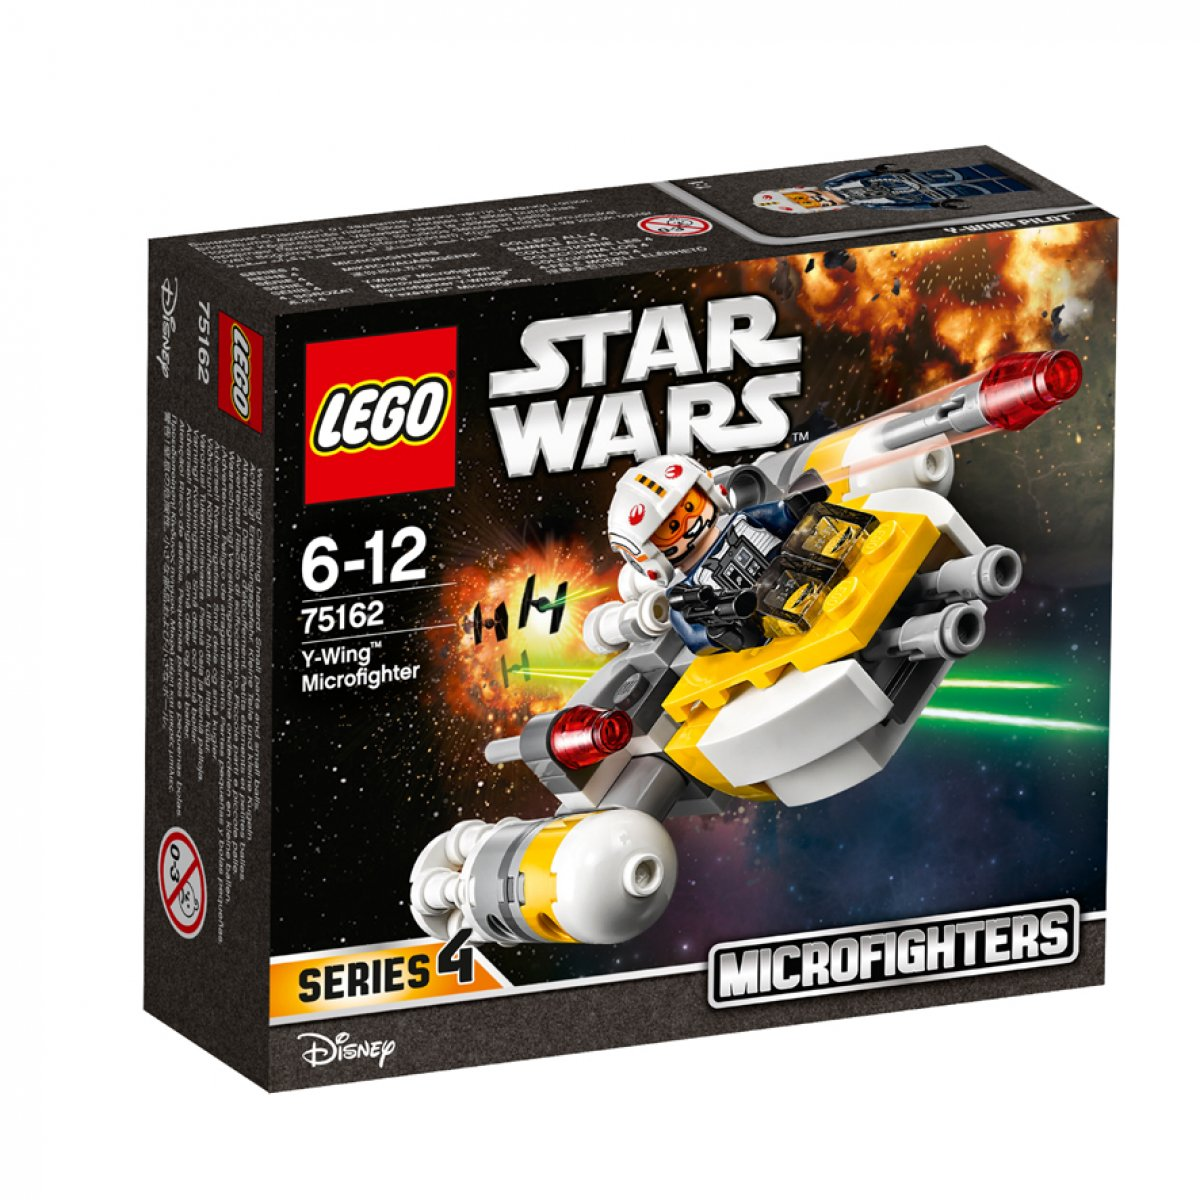 LEGO® Star Wars 75162 Microfighter 3 - Confidnetial